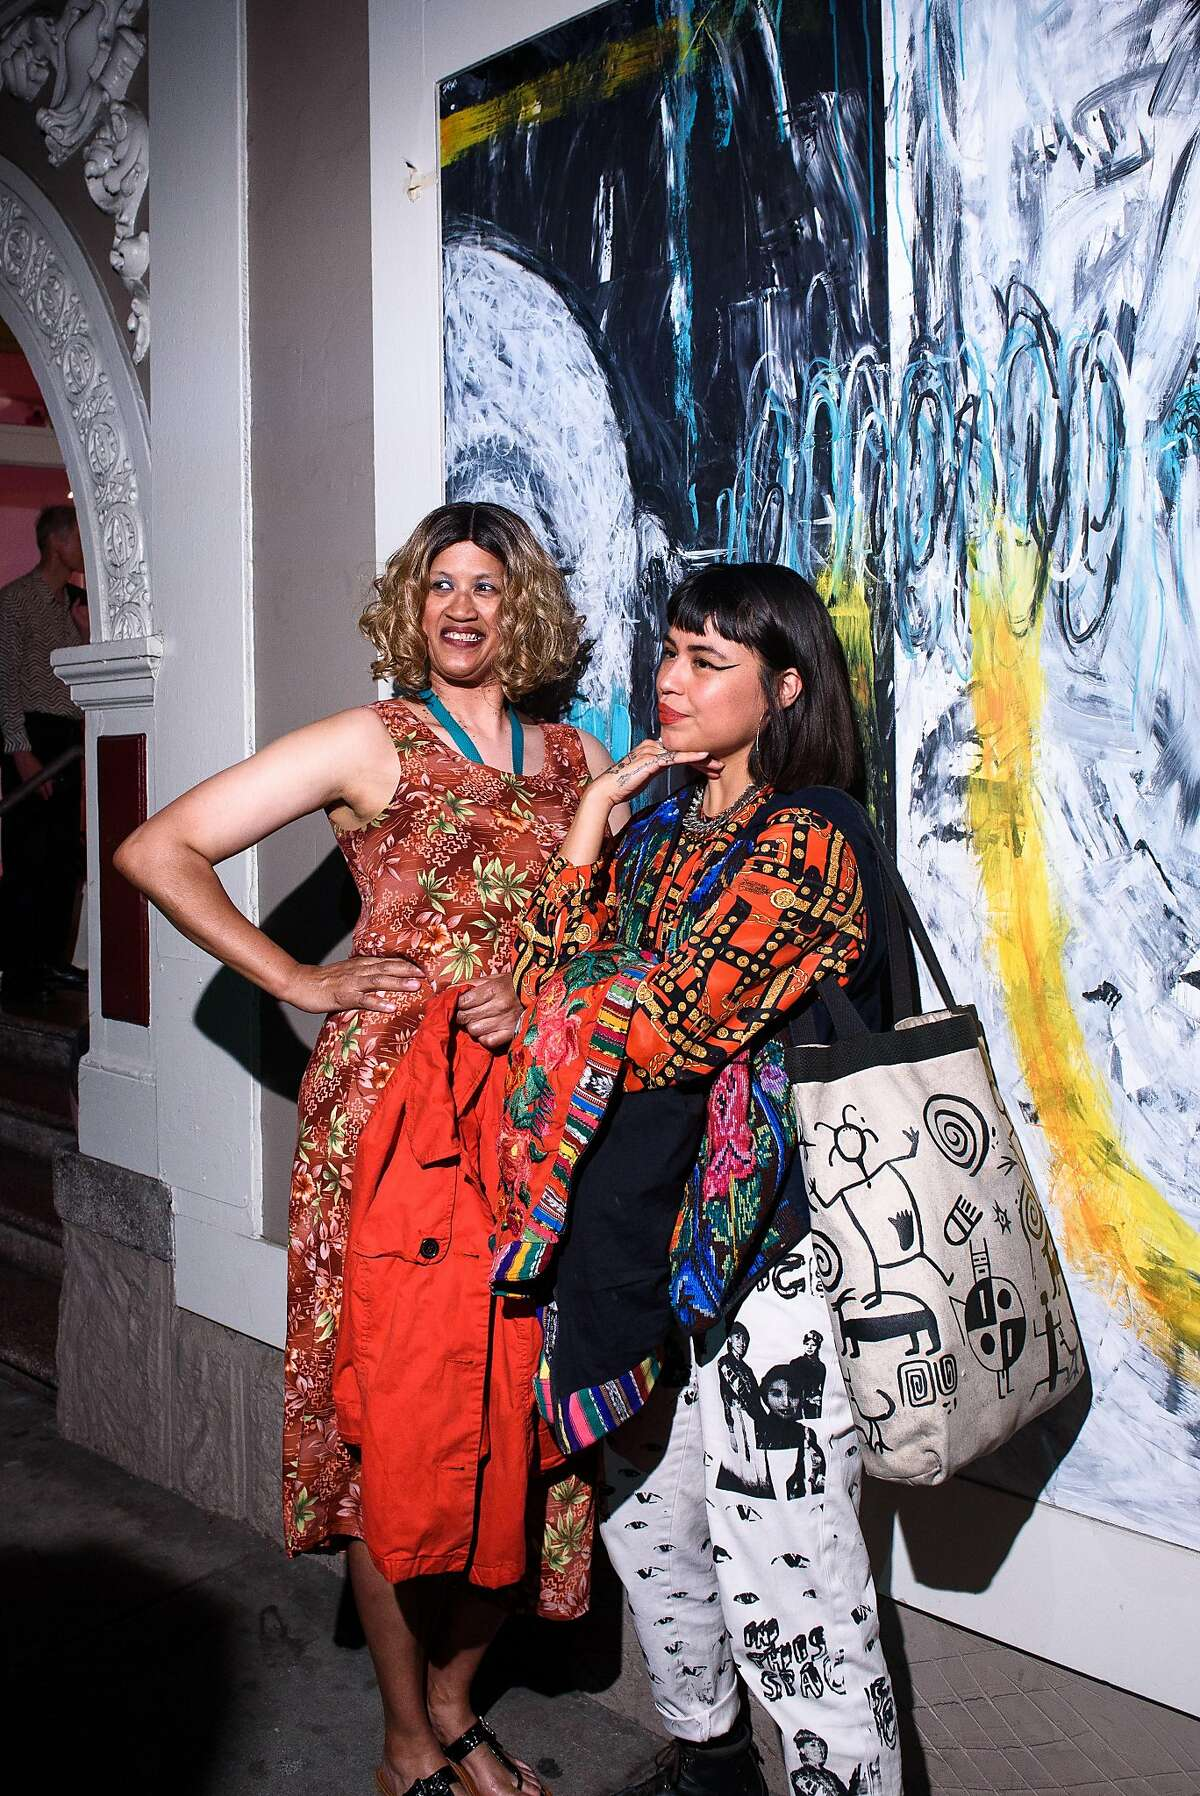 """Creativity Explored artist�Christina Marie Fong (left) and Grace Rosario Perkins posing in front of a mural by JD Green on the exterior of the Creativity Explored studio at """"Fabulate"""" the art center's Sept. 20 fashion show kicking off their exhibition up through Nov. 15 at their gallery at 3245 16th St."""